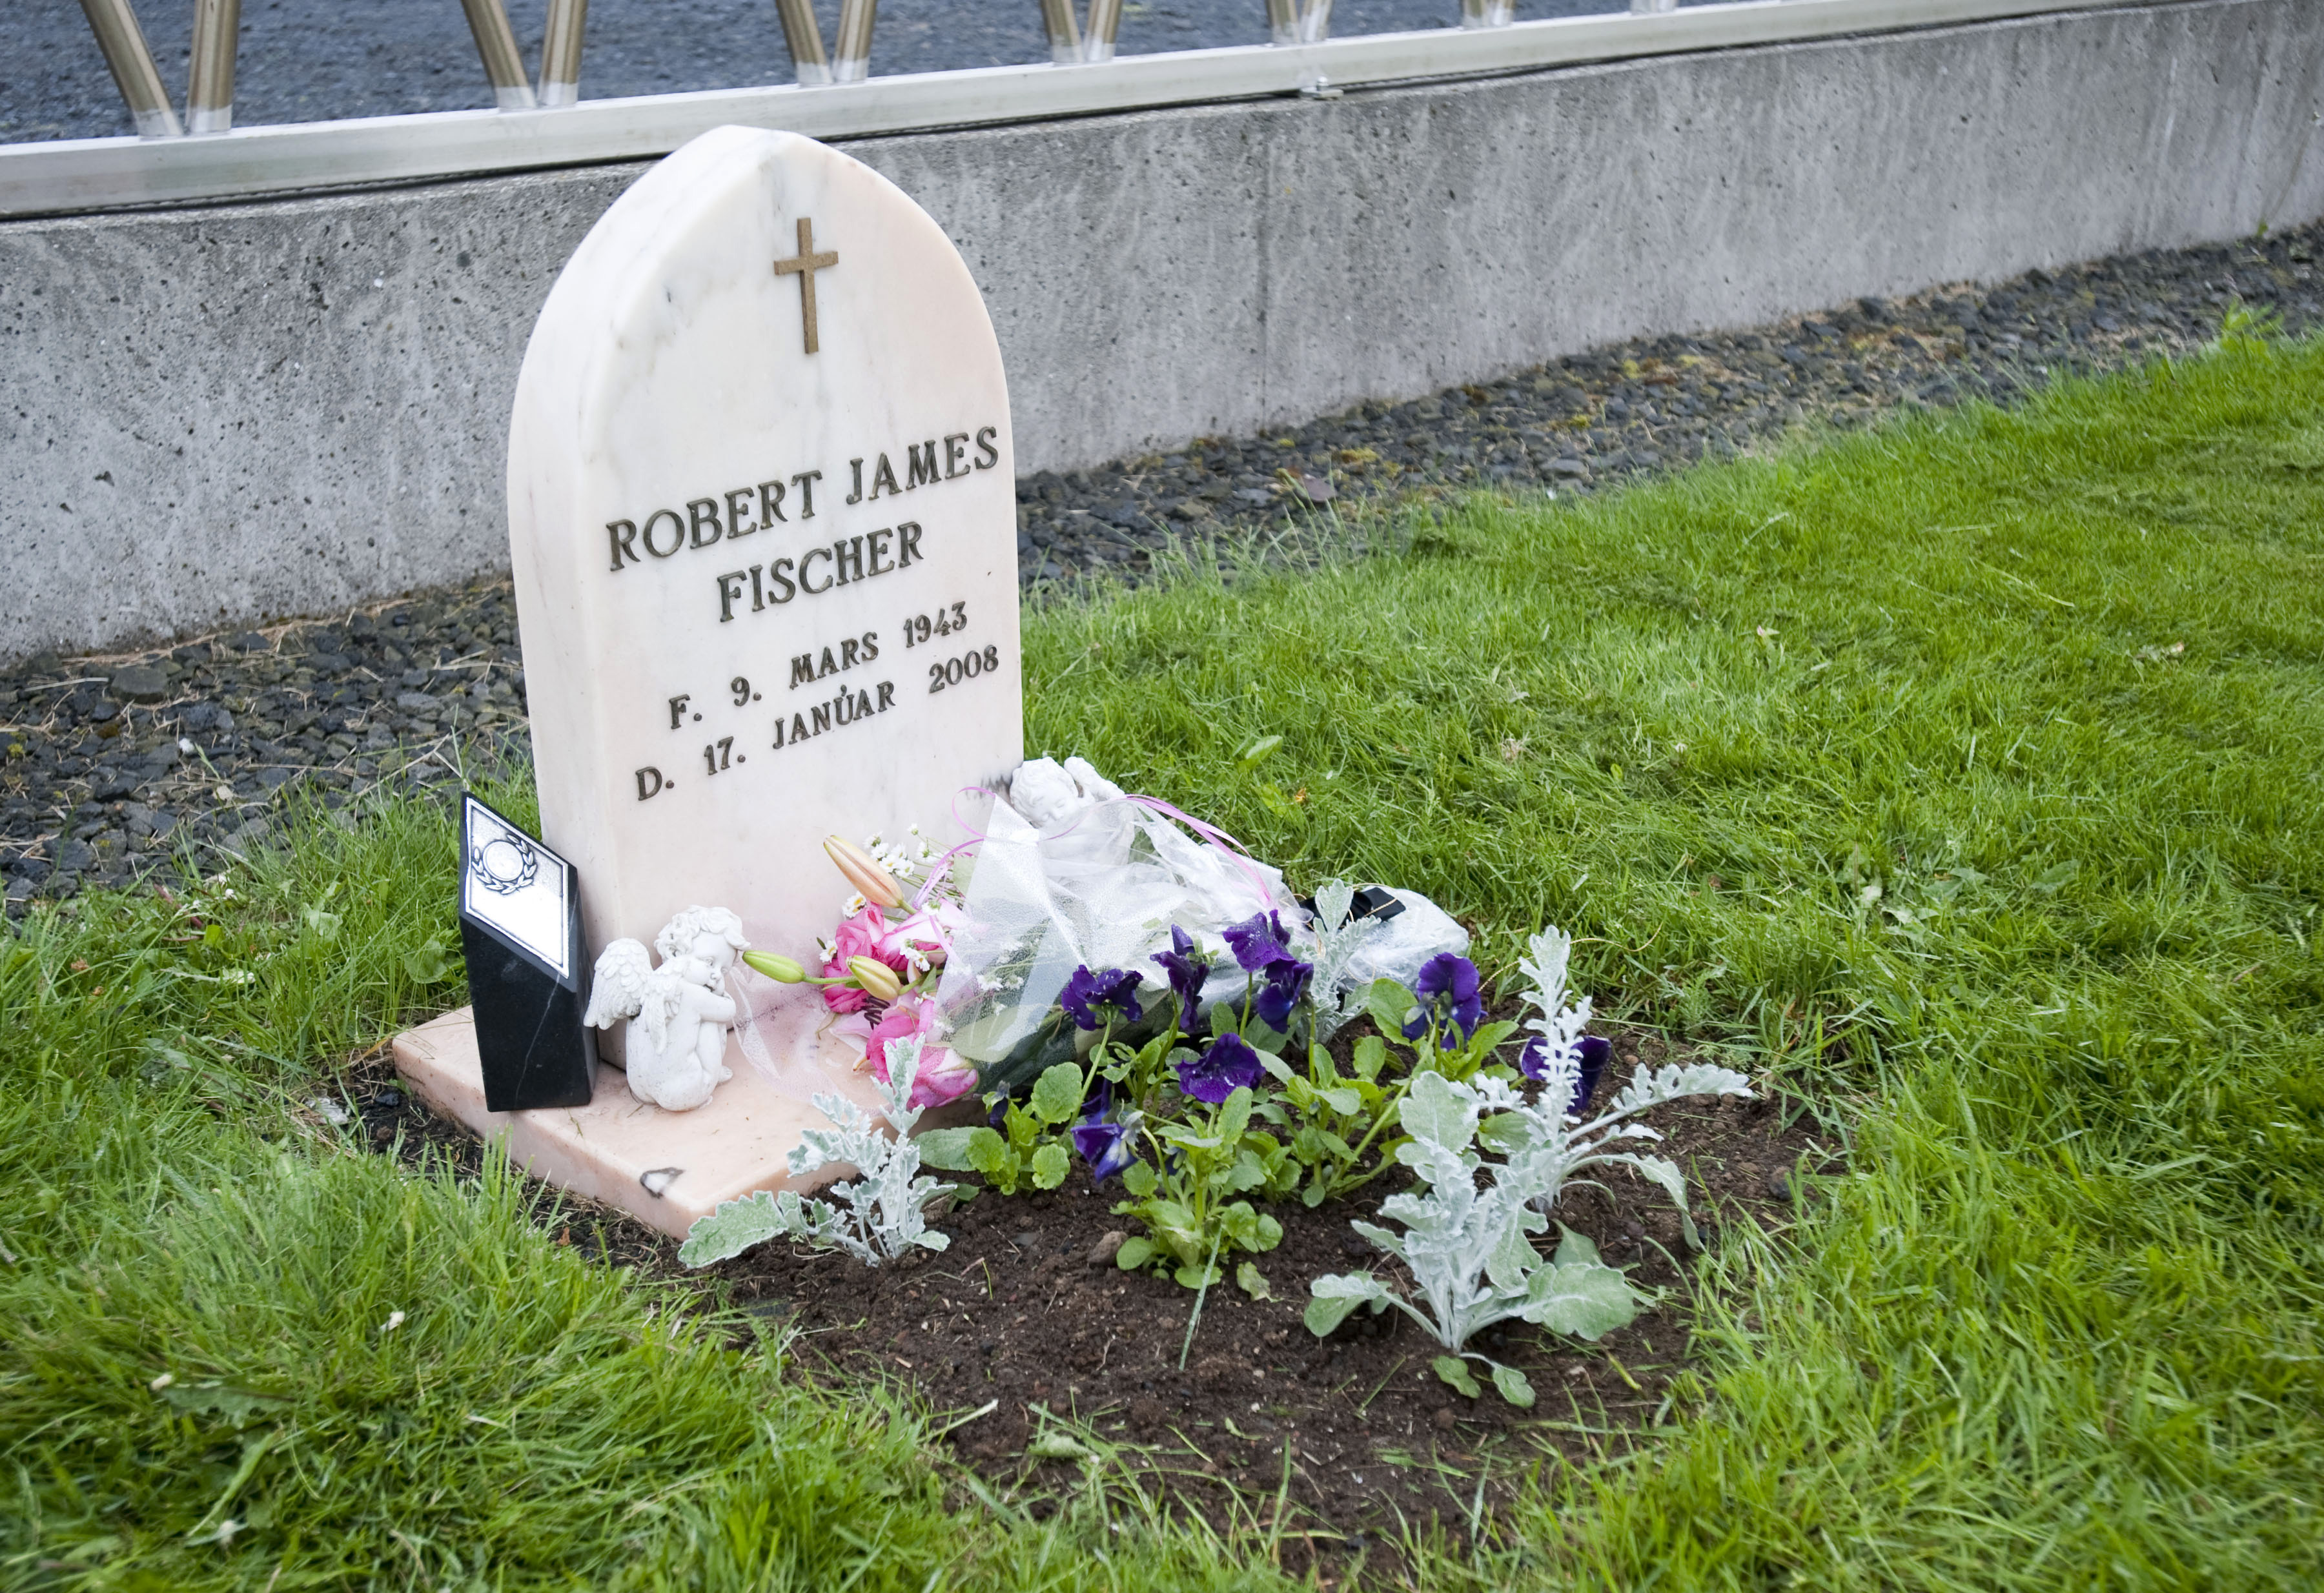 Chess legend Bobby Fischer's grave is pictured in southern Iceland's Laugardaelir Church Cemetery in Selfoss on June 18, 2010. Iceland's Supreme Court on June 16 ruled that the remains of chess legend Bobby Fischer can be exhumed for a paternity test to settle a dispute over his estate, public broadcaster RUV reported. His estate is estimated to be worth about two million dollars (1.6 million euros) and is reportedly contested by three parties in addition to Young: a wife, two American nephews and the US government, whom he owed unpaid taxes. AFP PHOTO / HALLDOR KOLBEINS (Photo credit should read HALLDOR KOLBEINS/AFP/Getty Images)